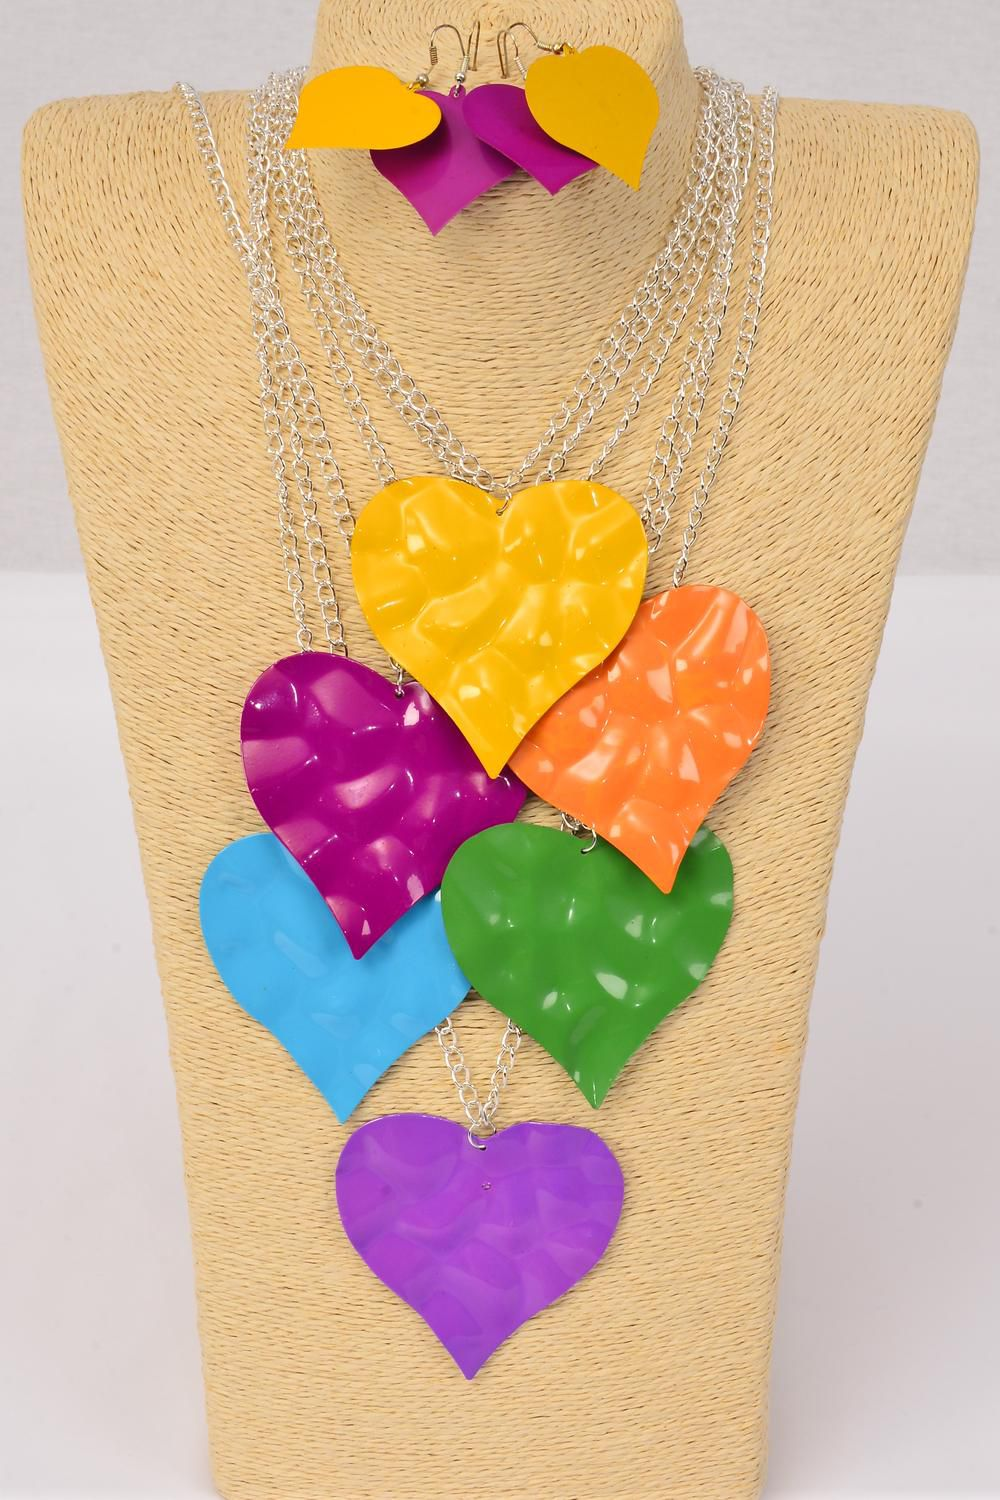 "Necklace Sets Silver Chain Enamel Heart Metal Pendant/DZ Pendant Size-2.75""x 2.5"" Wide,30"" Long Chain,2 of each Color Asst,Hang Tag & OPP bag & UPC code -"